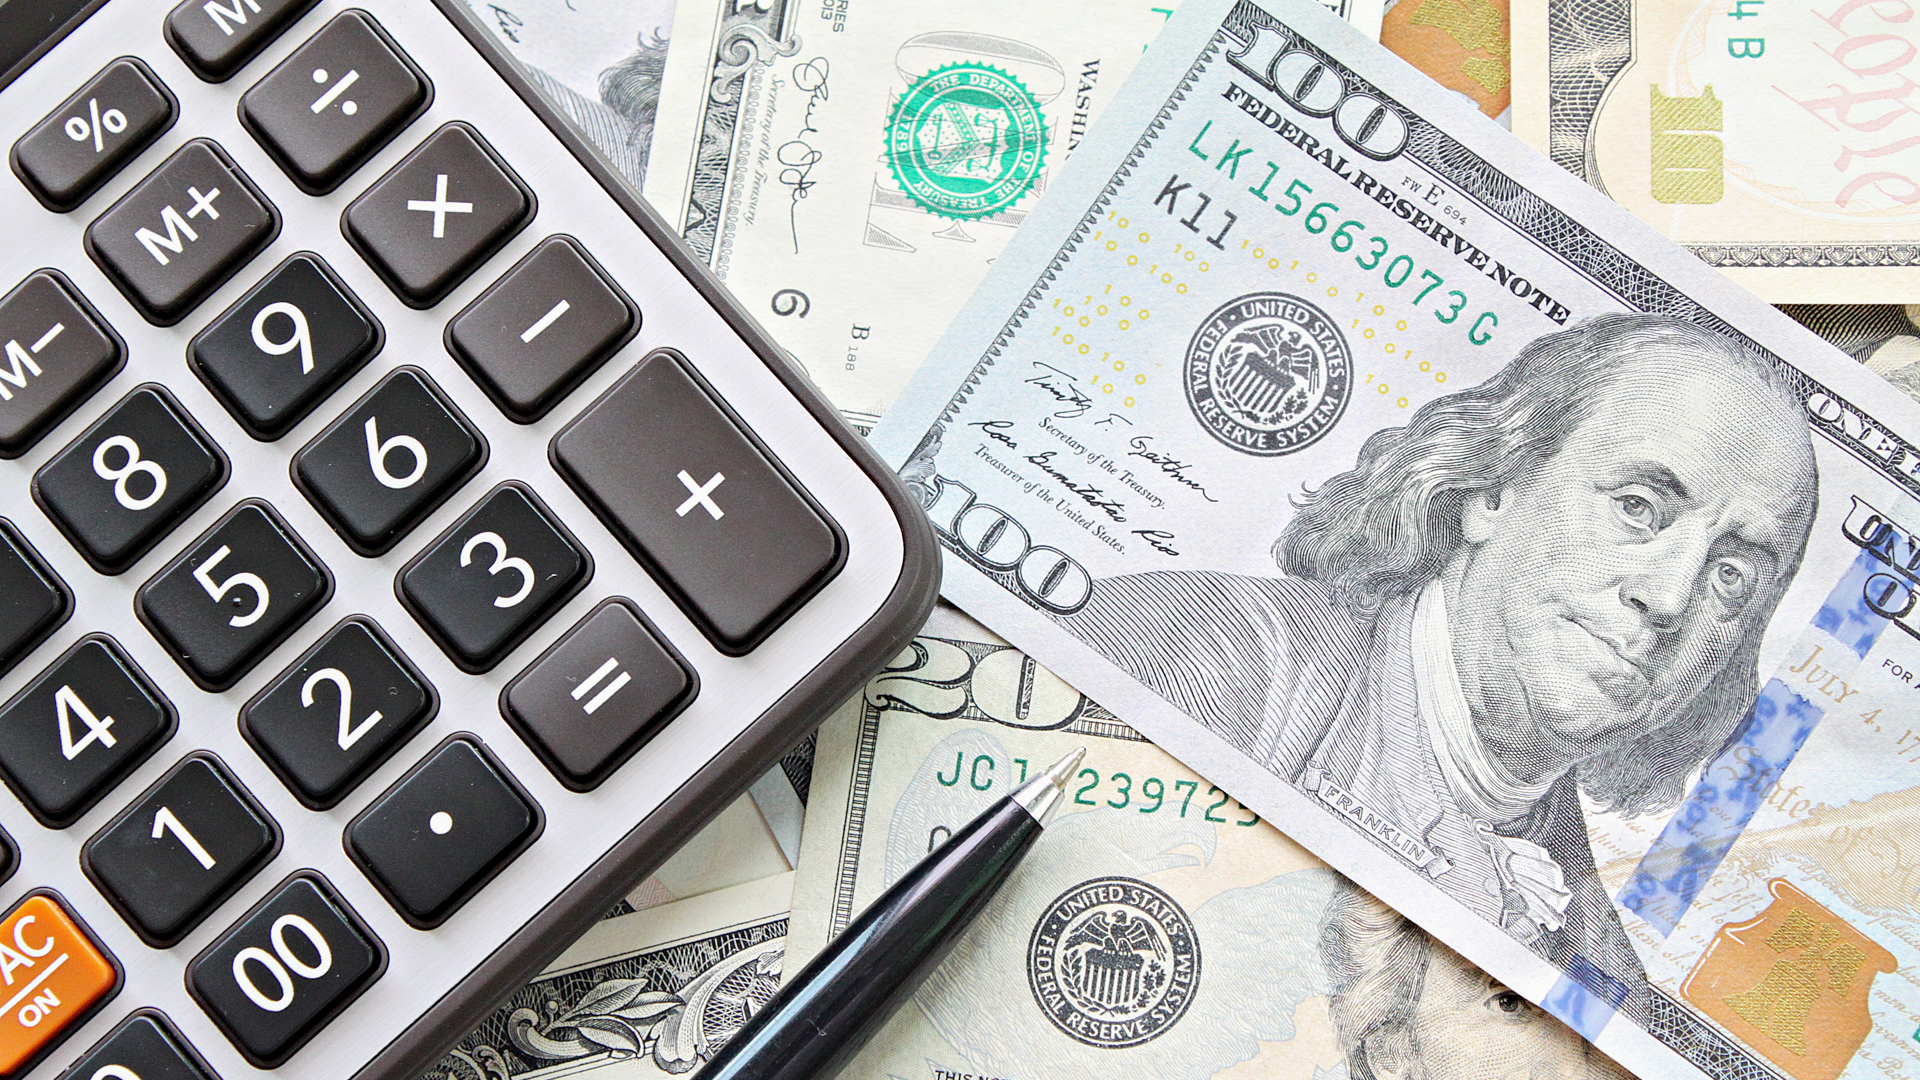 Business, finance, investment, accounting, taxes or money exchange concept : Top view or flat lay of calculator and pen on American Dollars cash money.